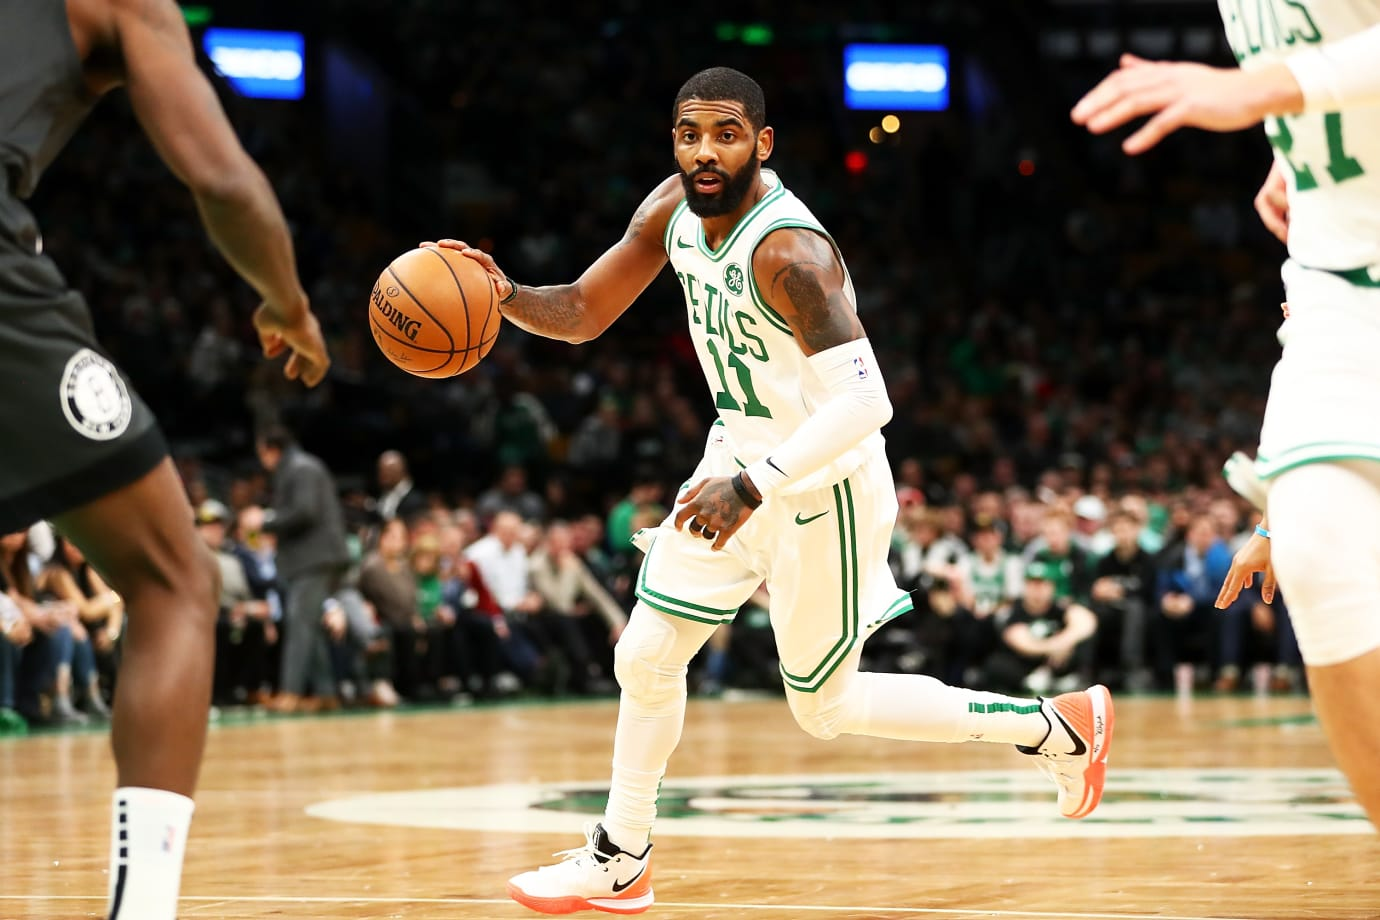 Kyrie Irving in the Nike Kyrie 5 'Vapor X'